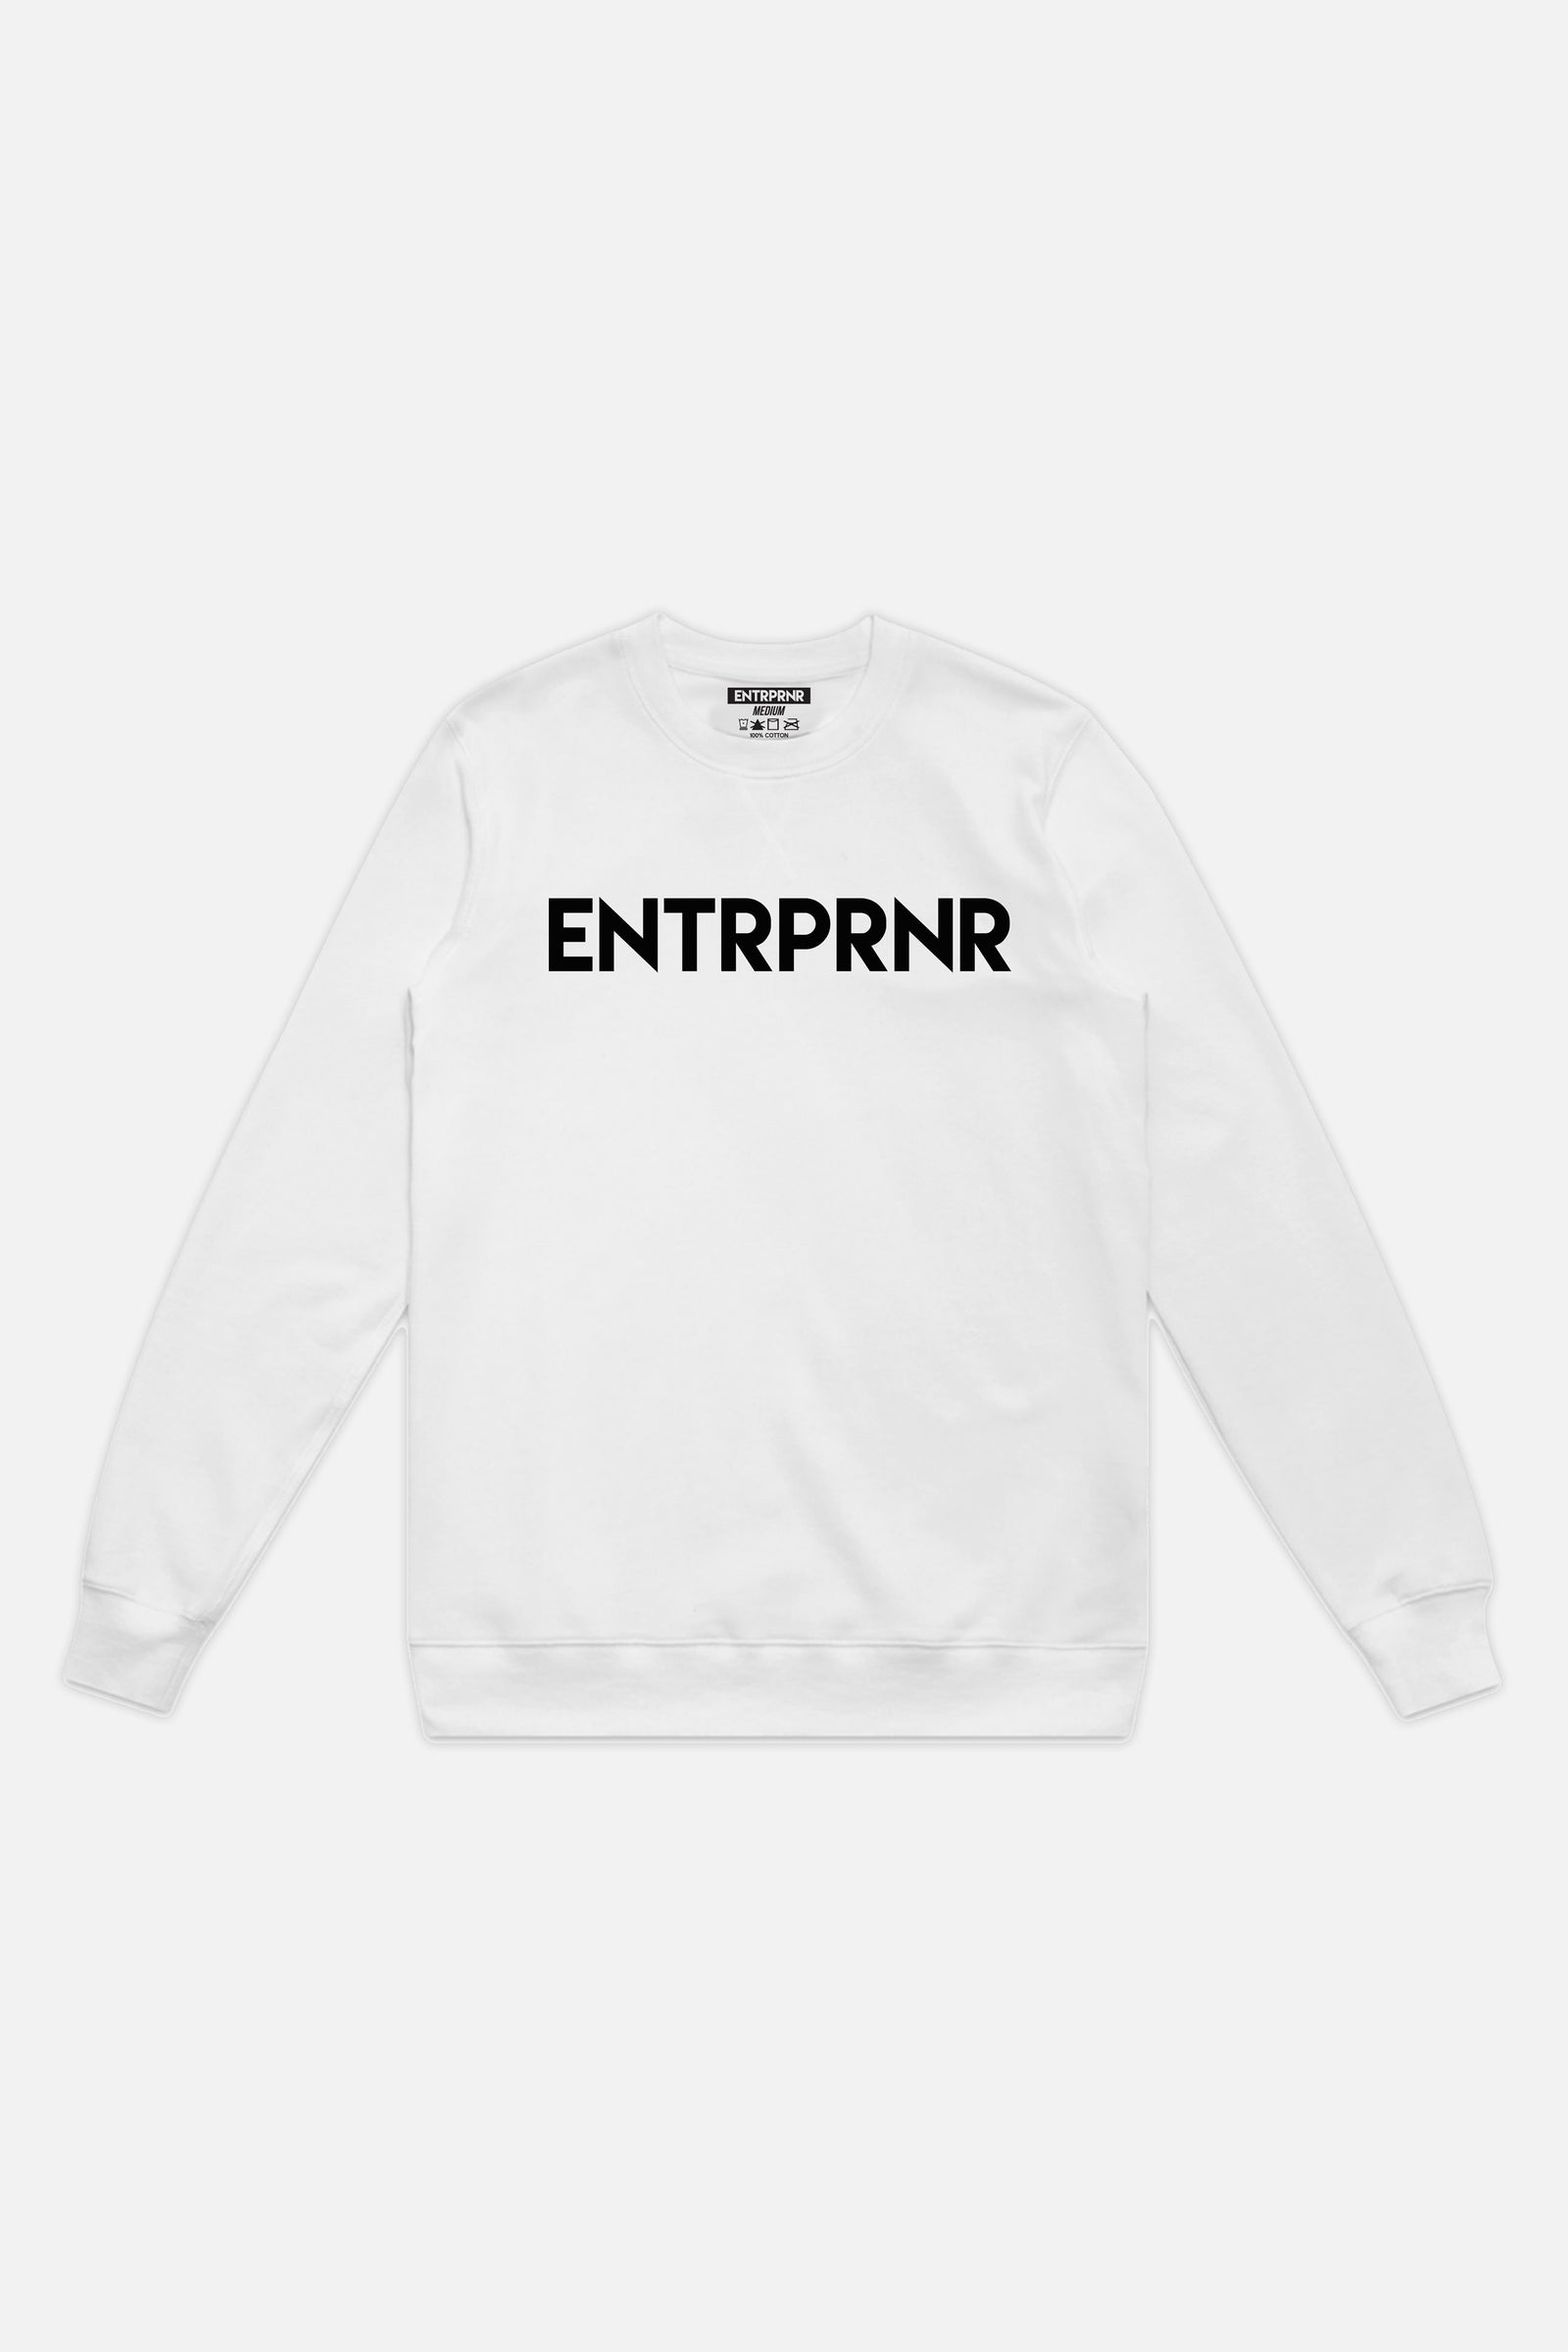 ENTRPRNR Logo Crew Neck - White - ENTRPRNR® | The Entrepreneur's Clothing Brand. | Stagnancy is the Enemy. Action is King.